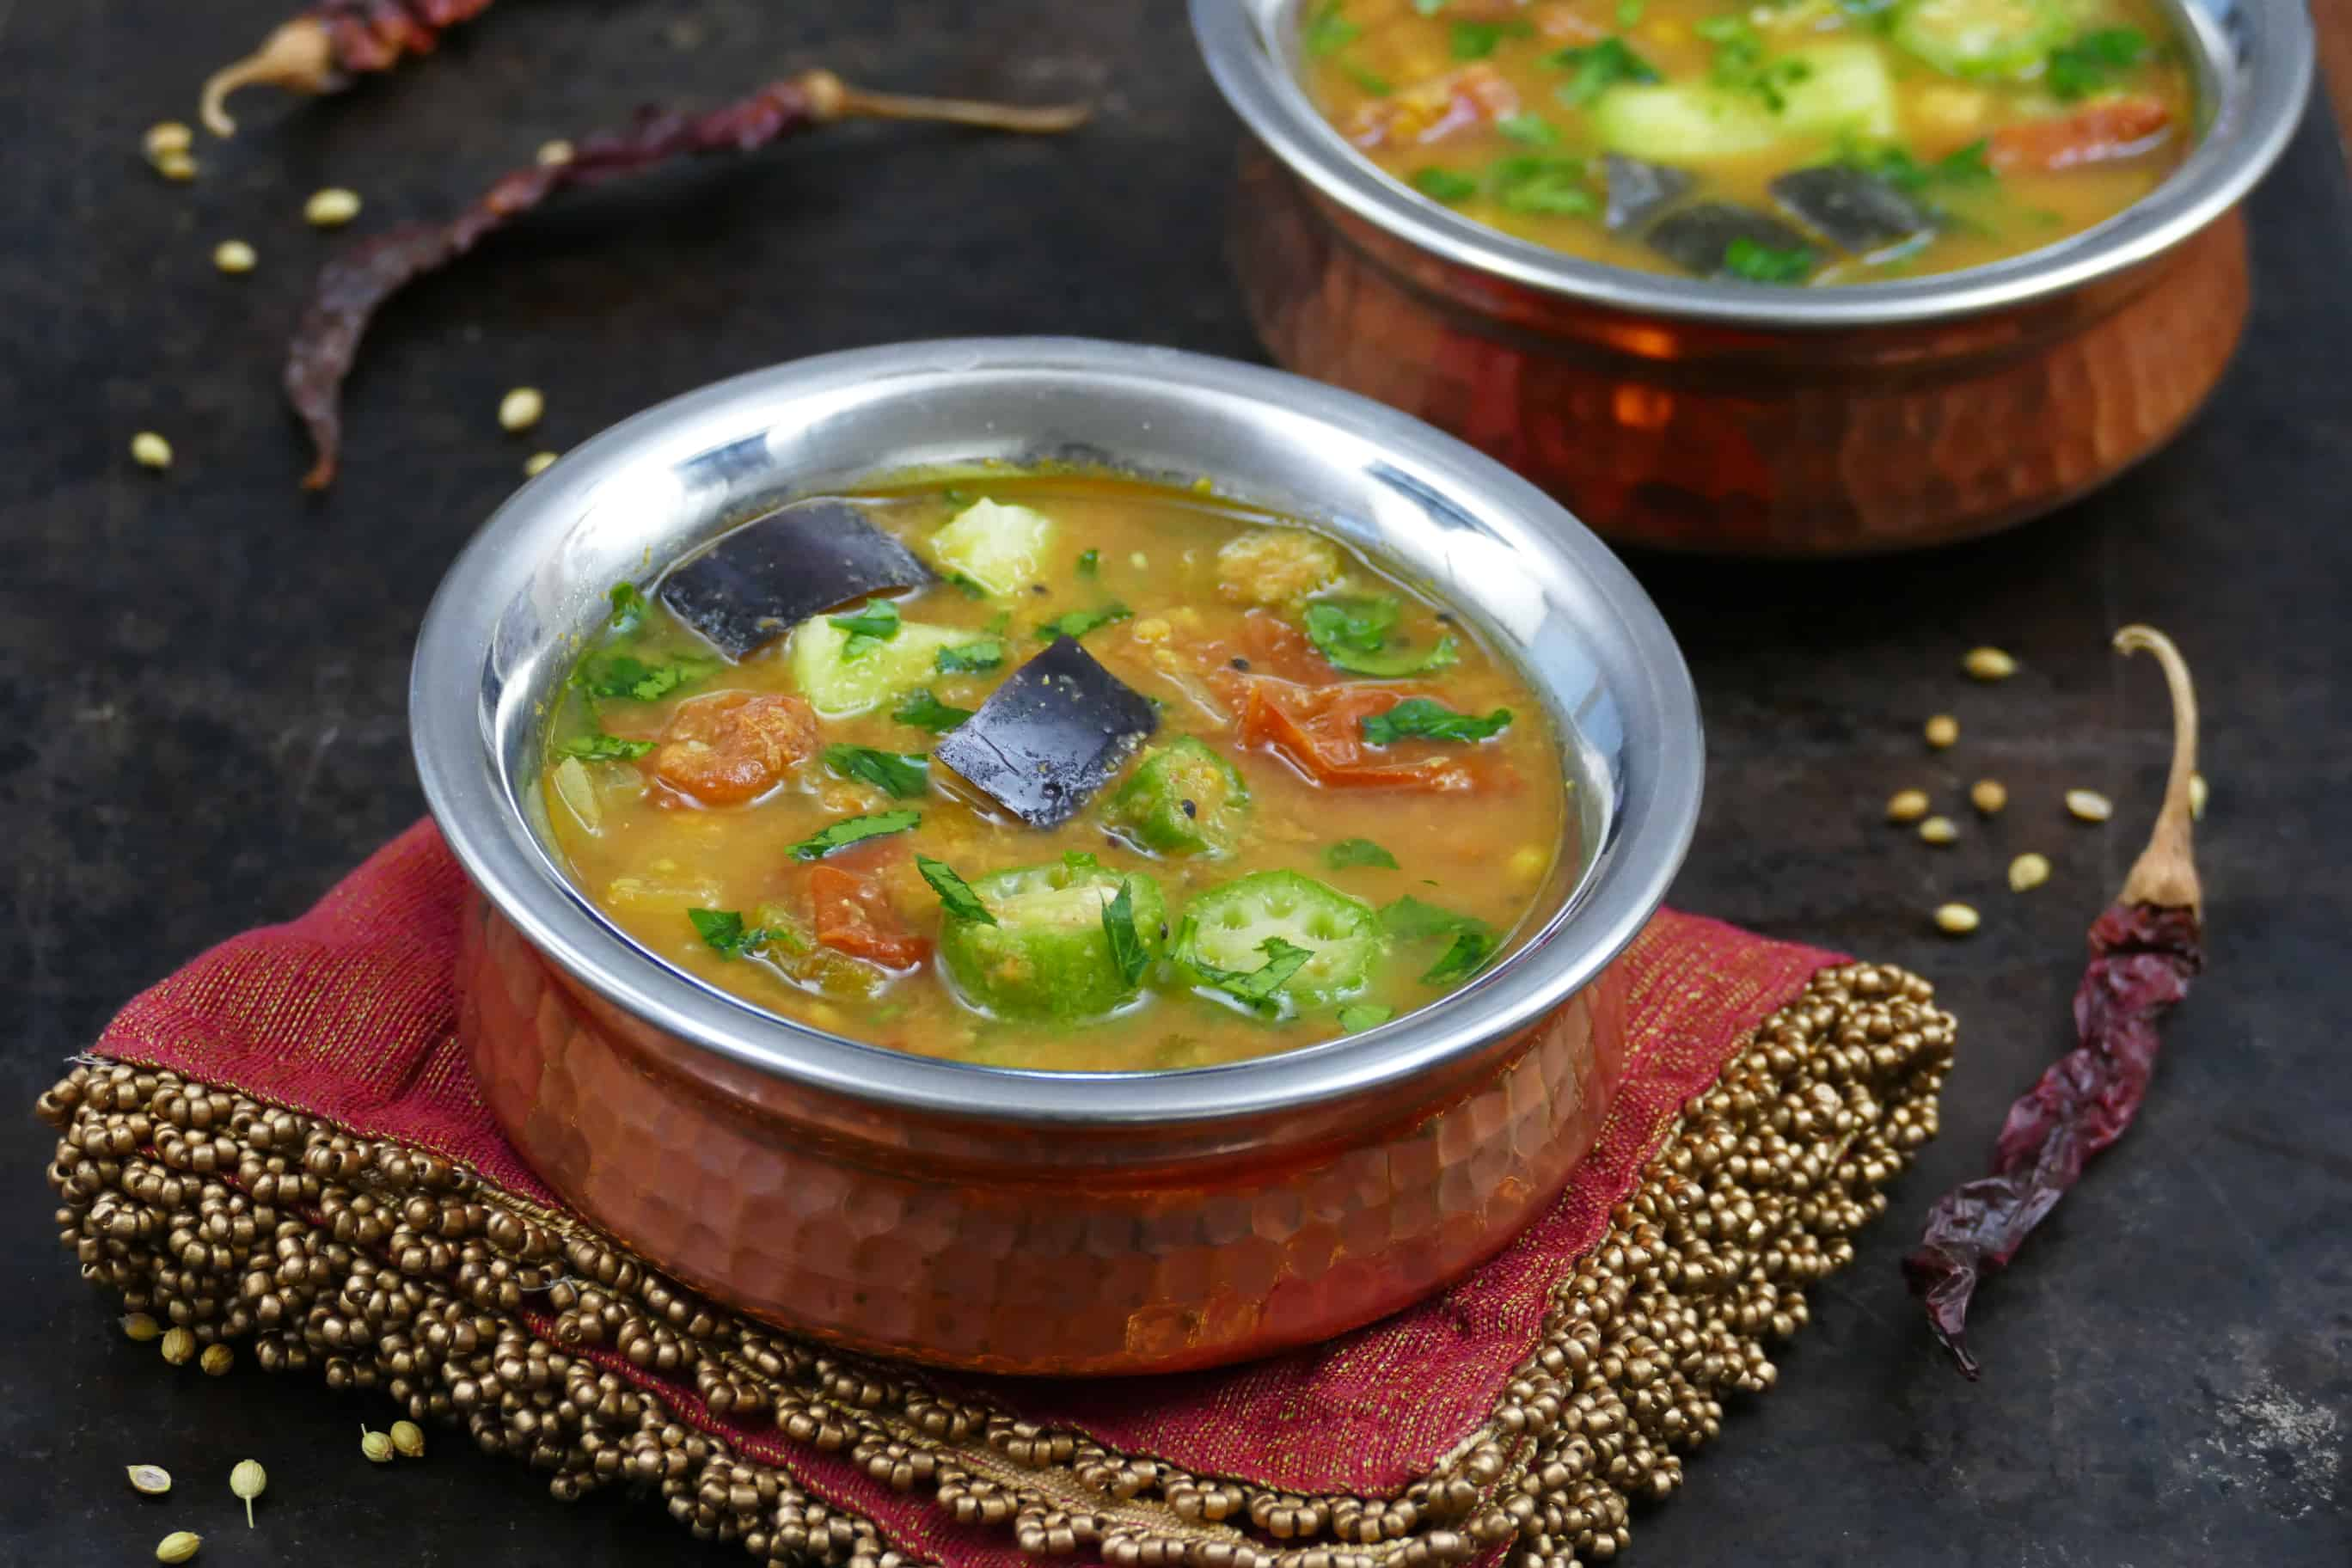 Instant Pot Sambar L1 - two bowls of sambar with tomatoes, eggplant okra, garnished with cilantro - Paint the Kitchen Red